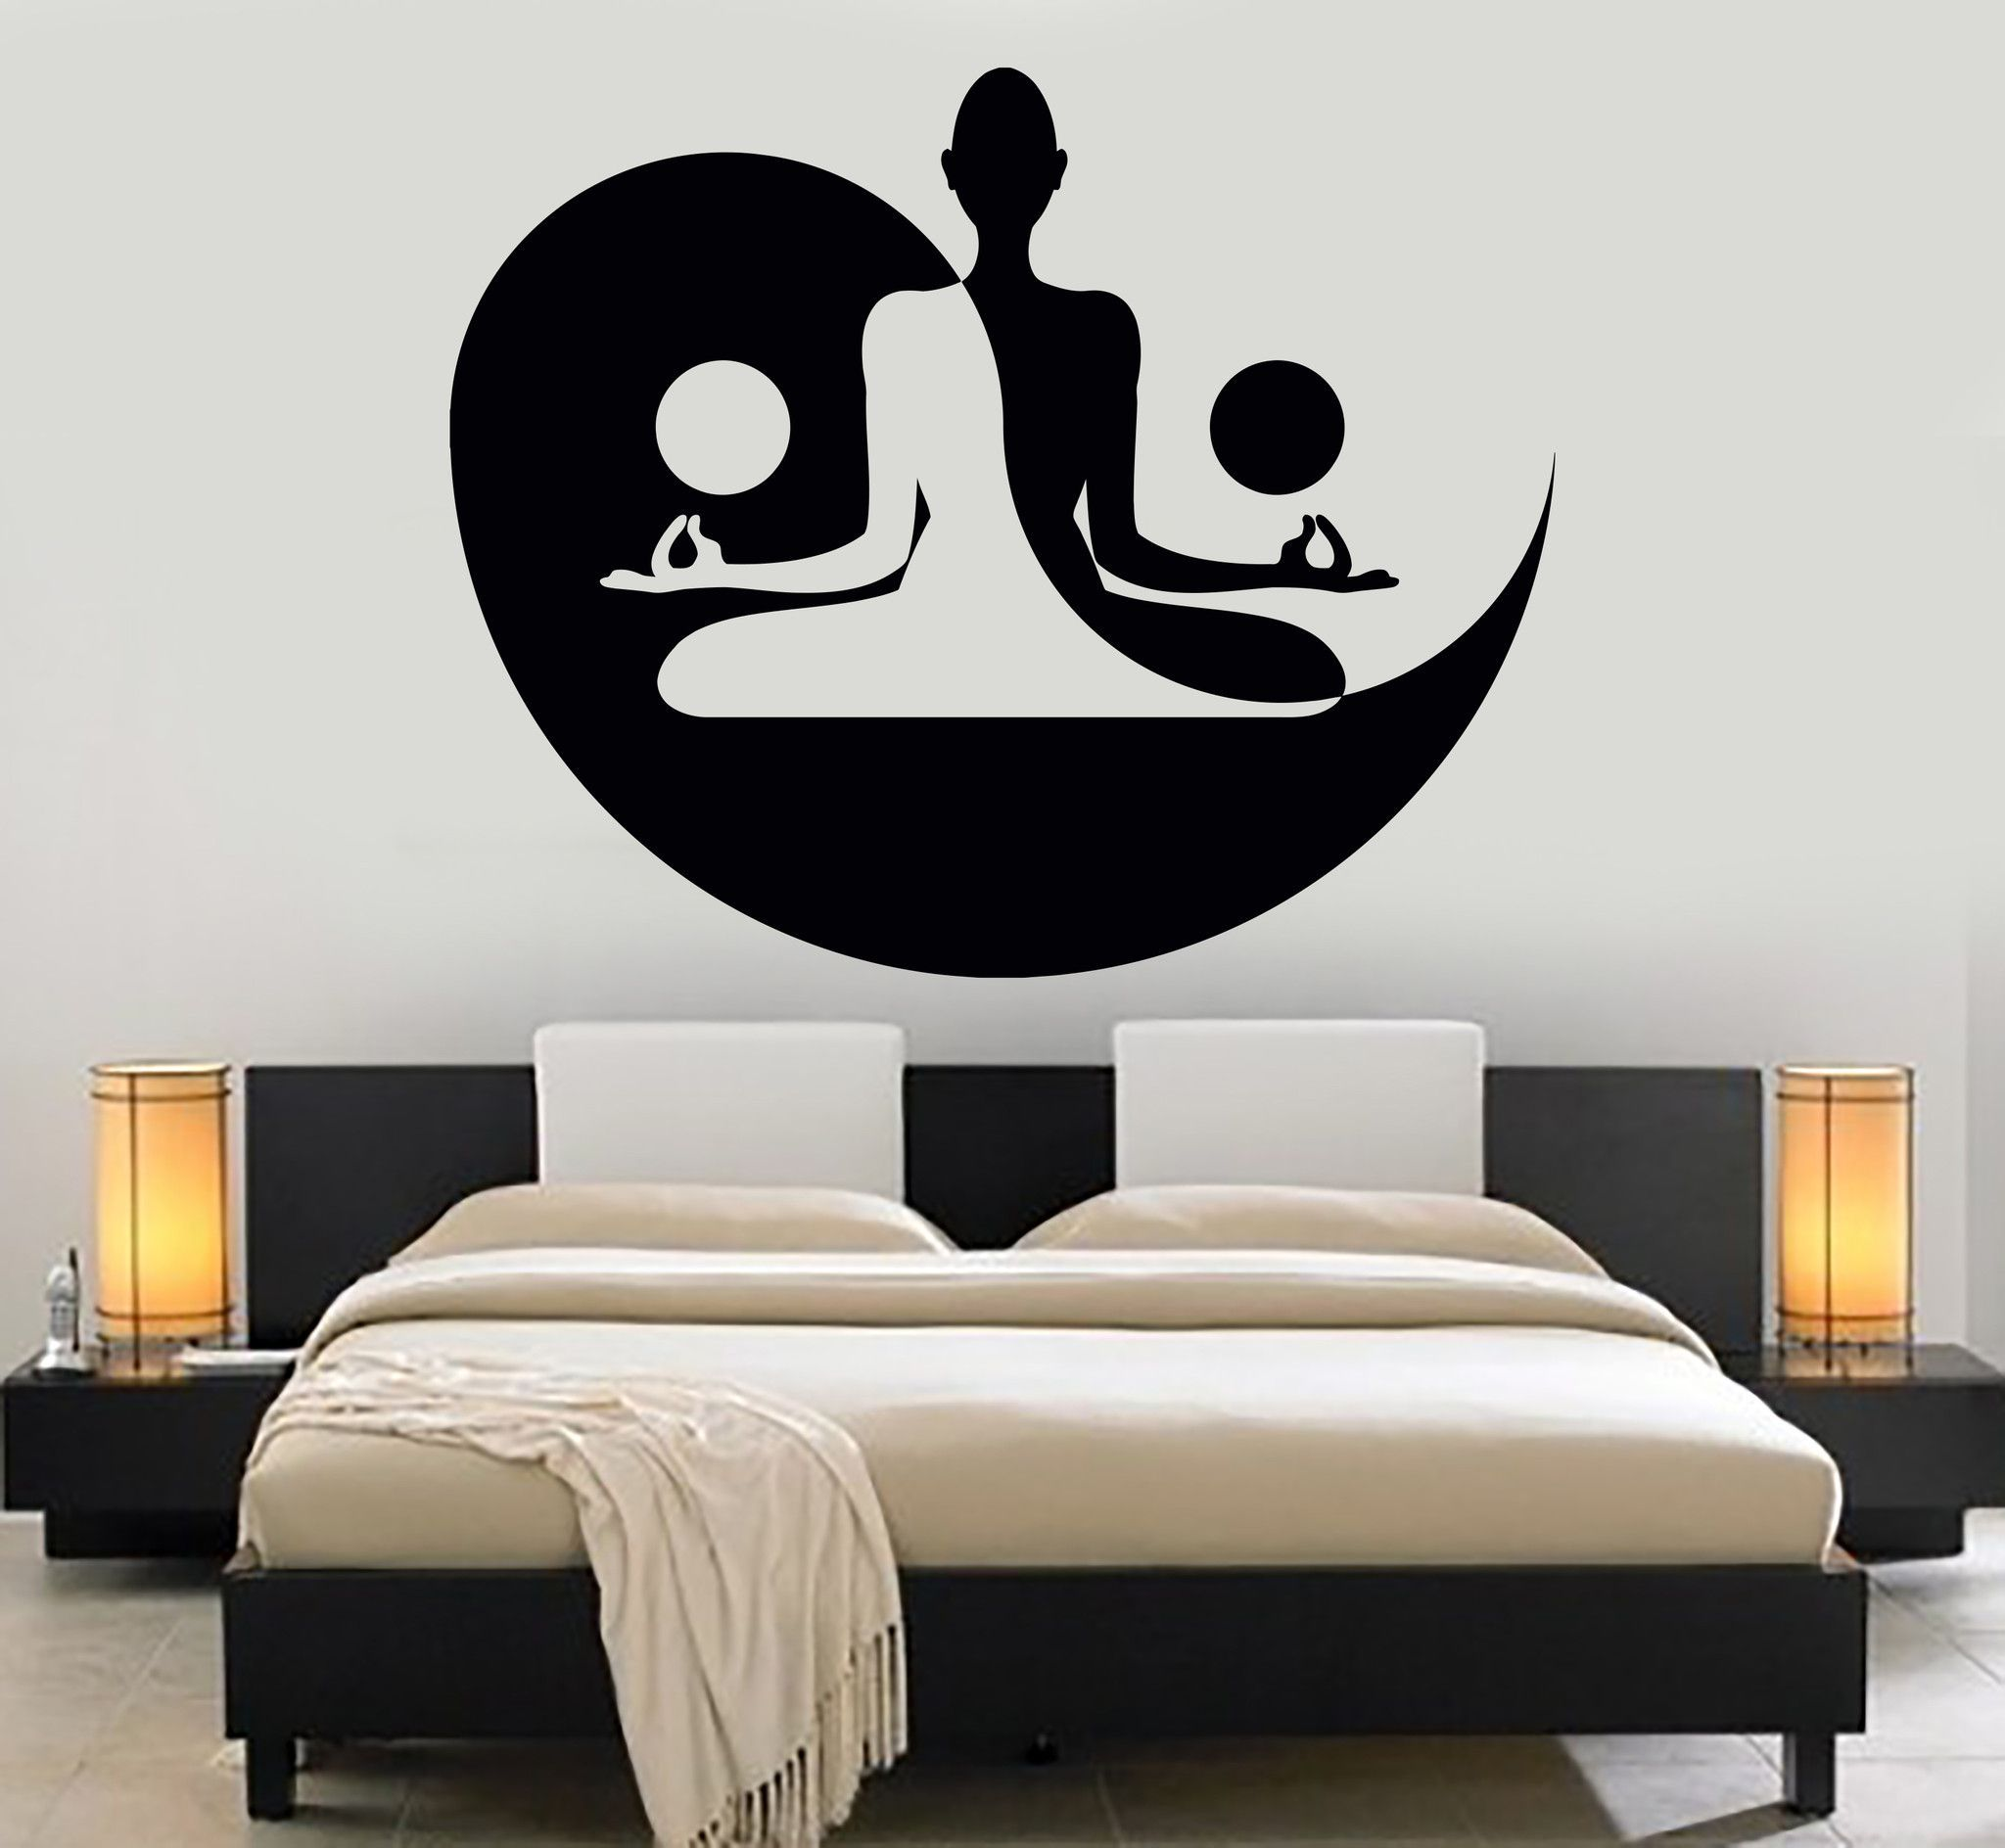 Vinyl Wall Decal Yin Yang Yoga Zen Meditation Bedroom Decor Stickers Mural Unique Gift (120ig